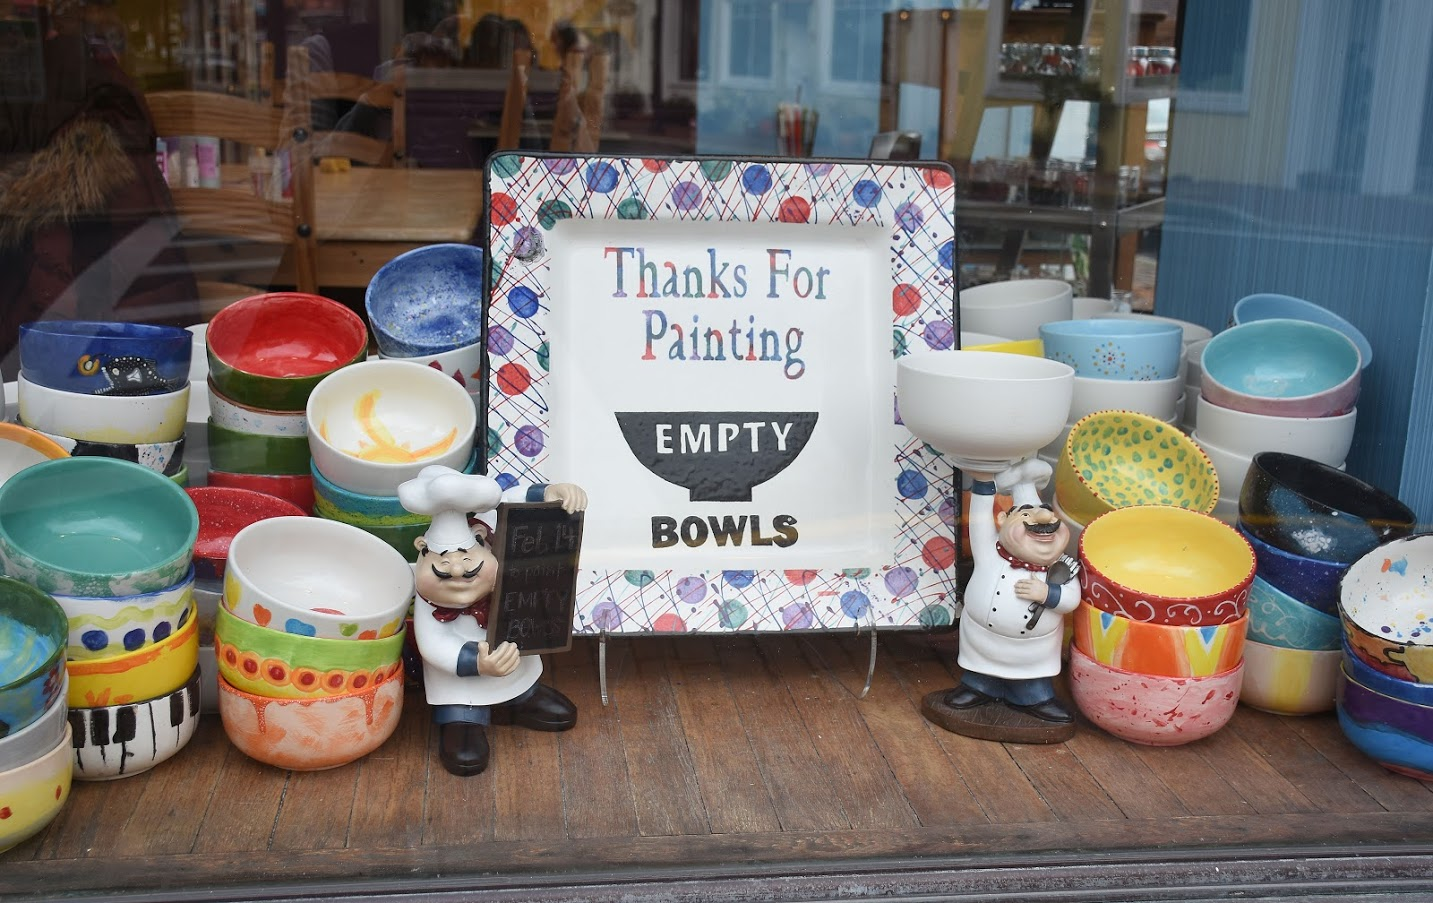 A thank you sign surrounded by ceramics